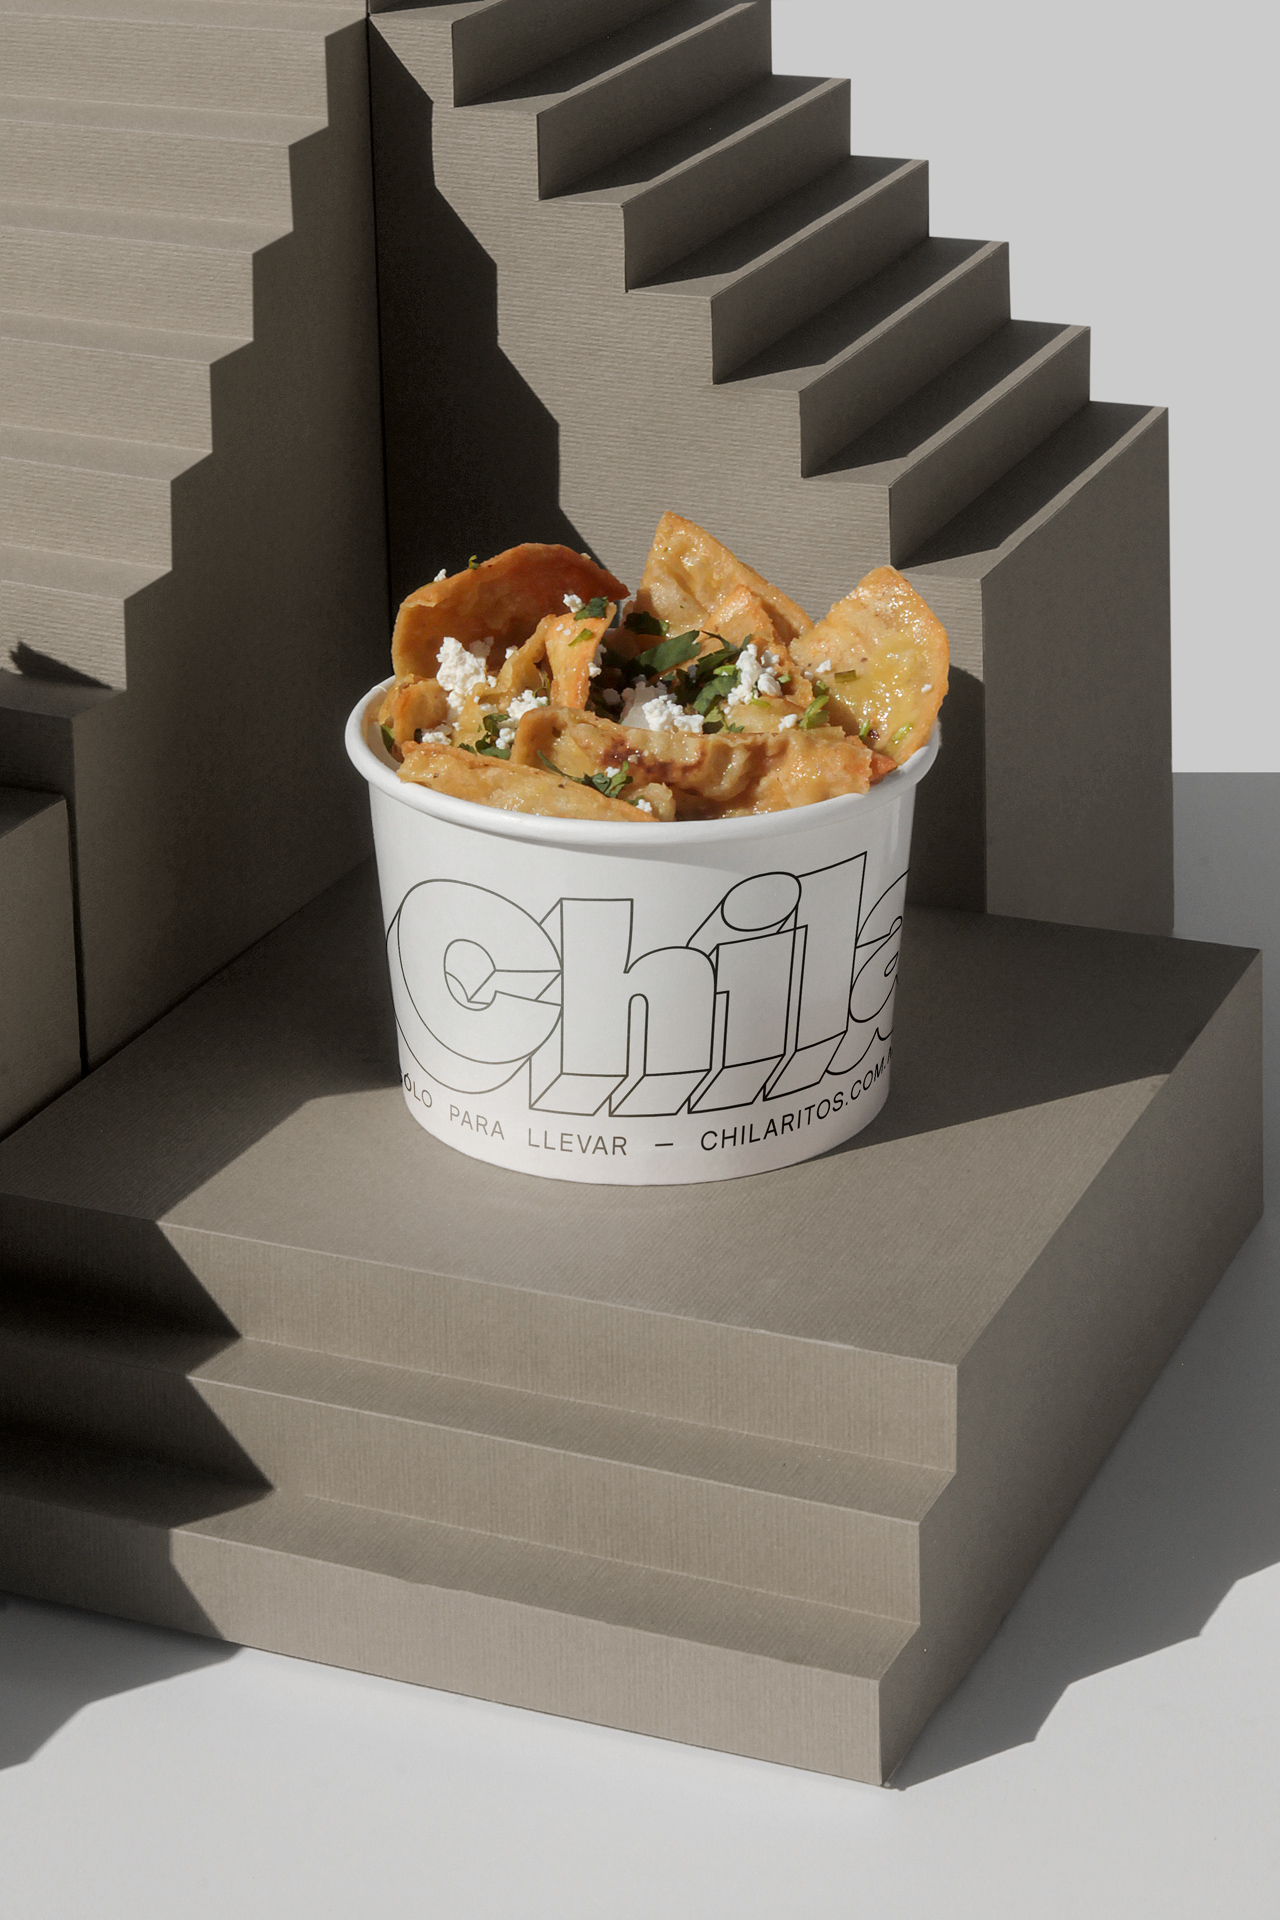 Manifiesto Created Branding for Chilaritos Restaurant in Mexico City